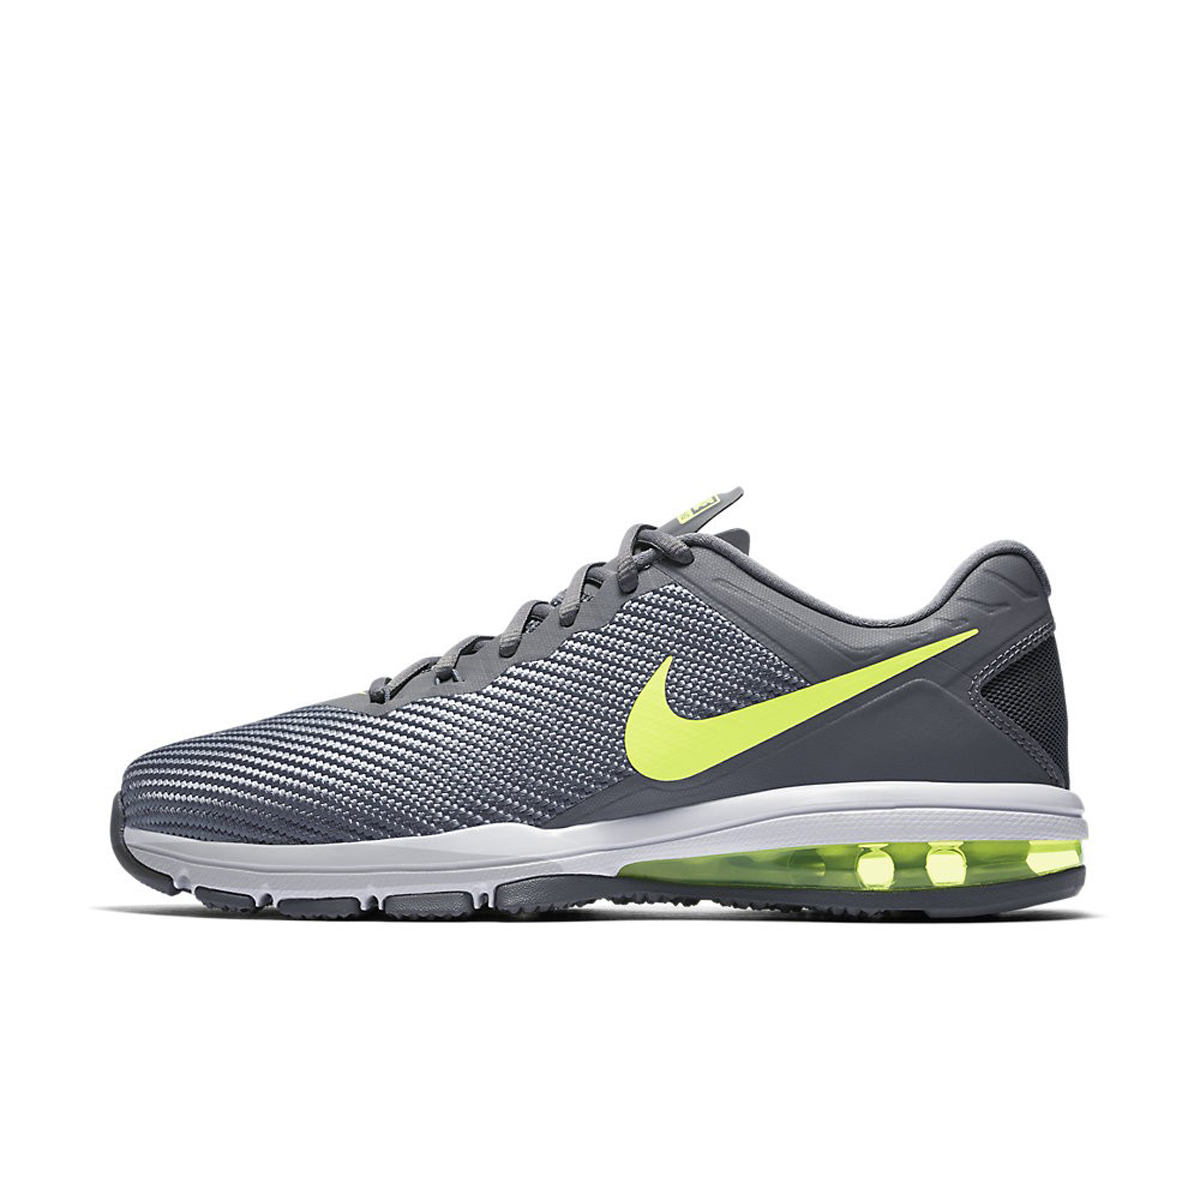 best website 748a4 ecb51 promo code for nike nike air max full ride tr 1.5 869633 017 b30a8 25720